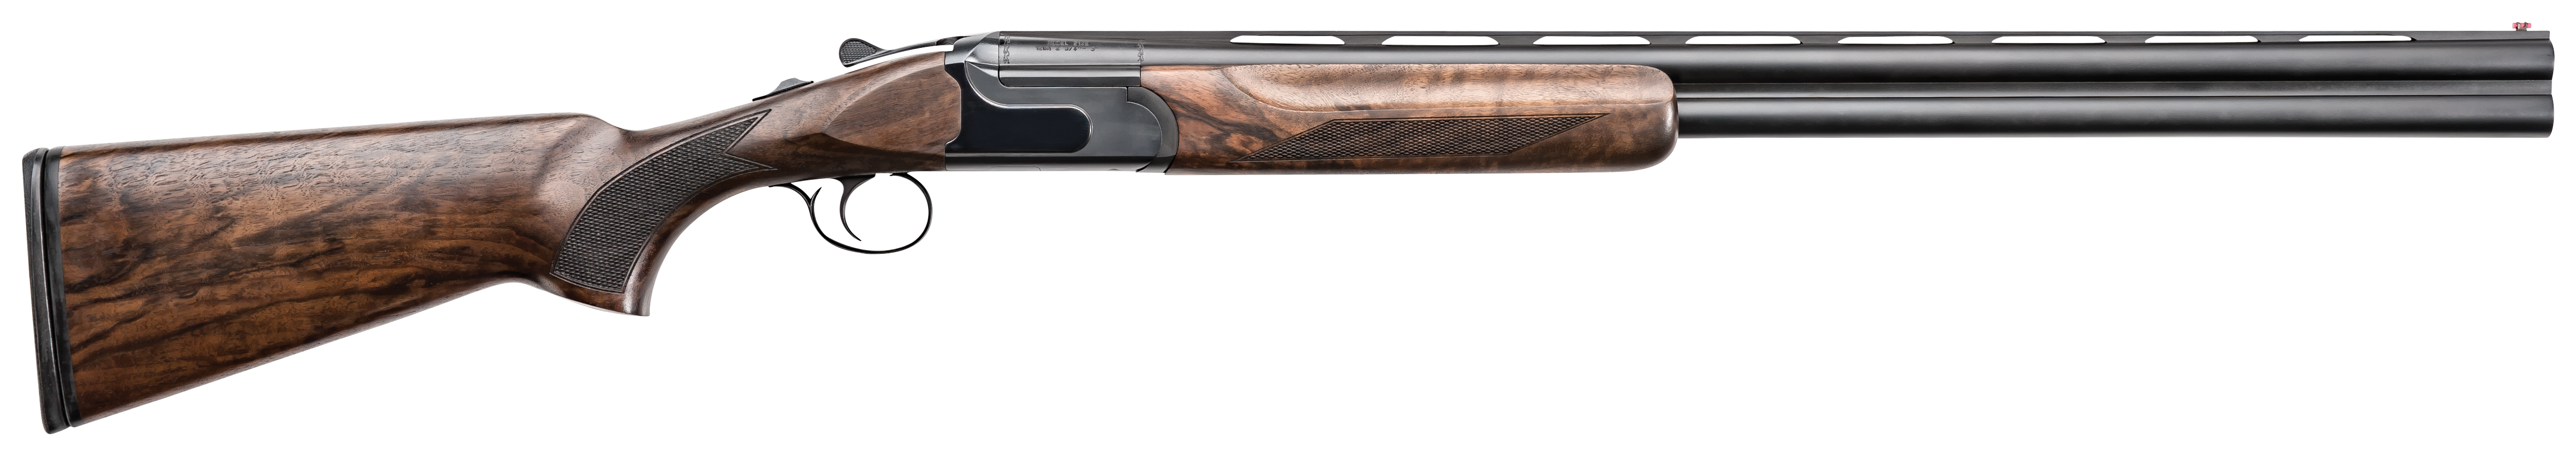 Charles Daly Chiappa 930085 214E Field Over/Under 12 Gauge 28